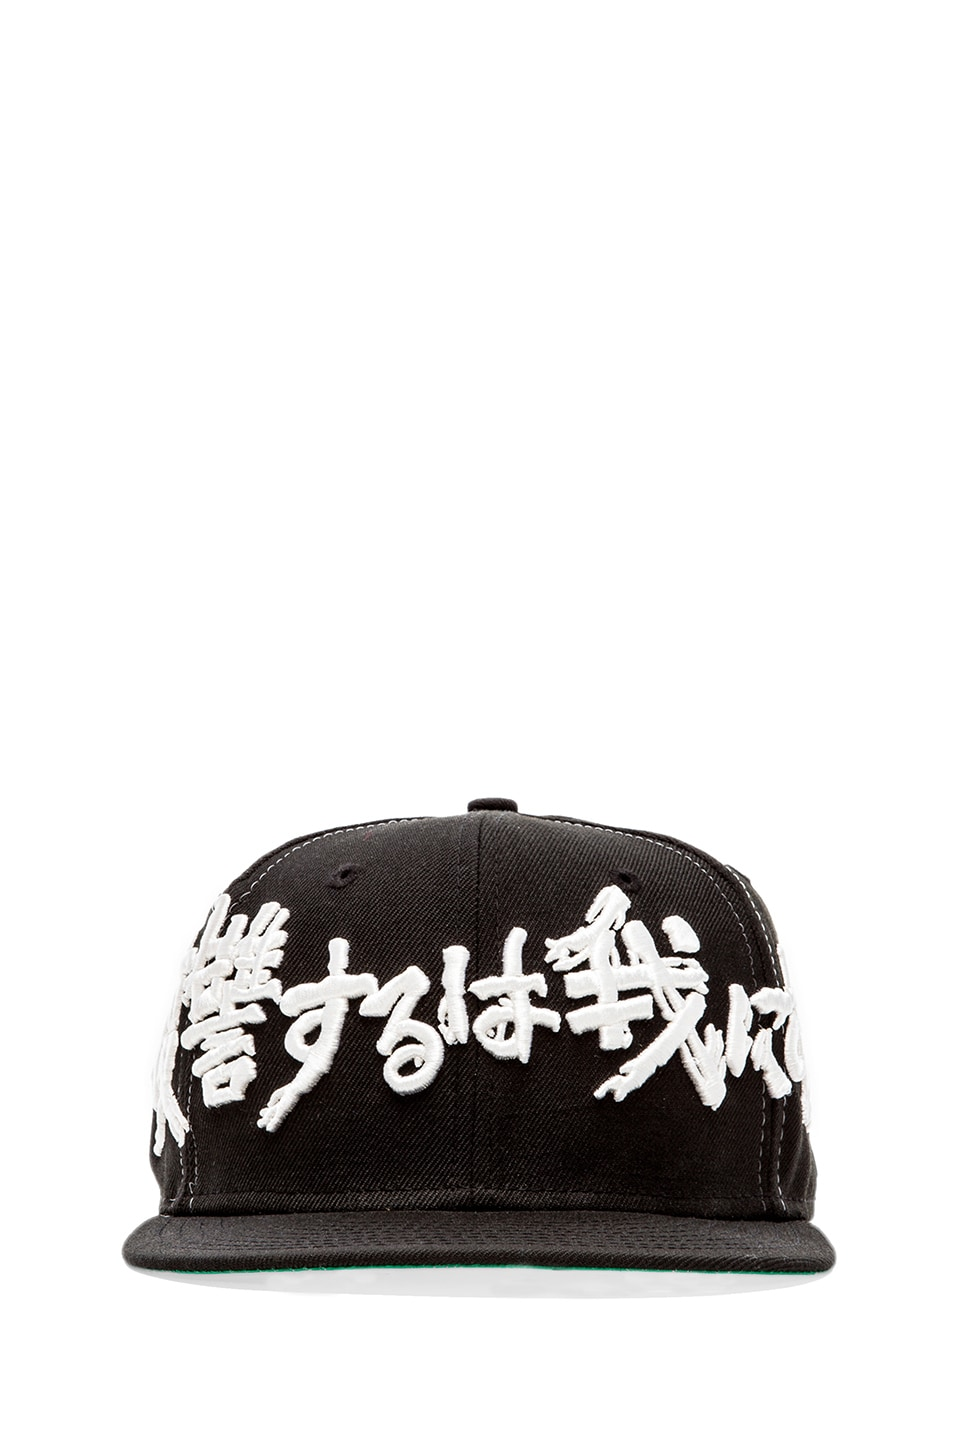 10 Deep Vengeance Fitted Hat in Black